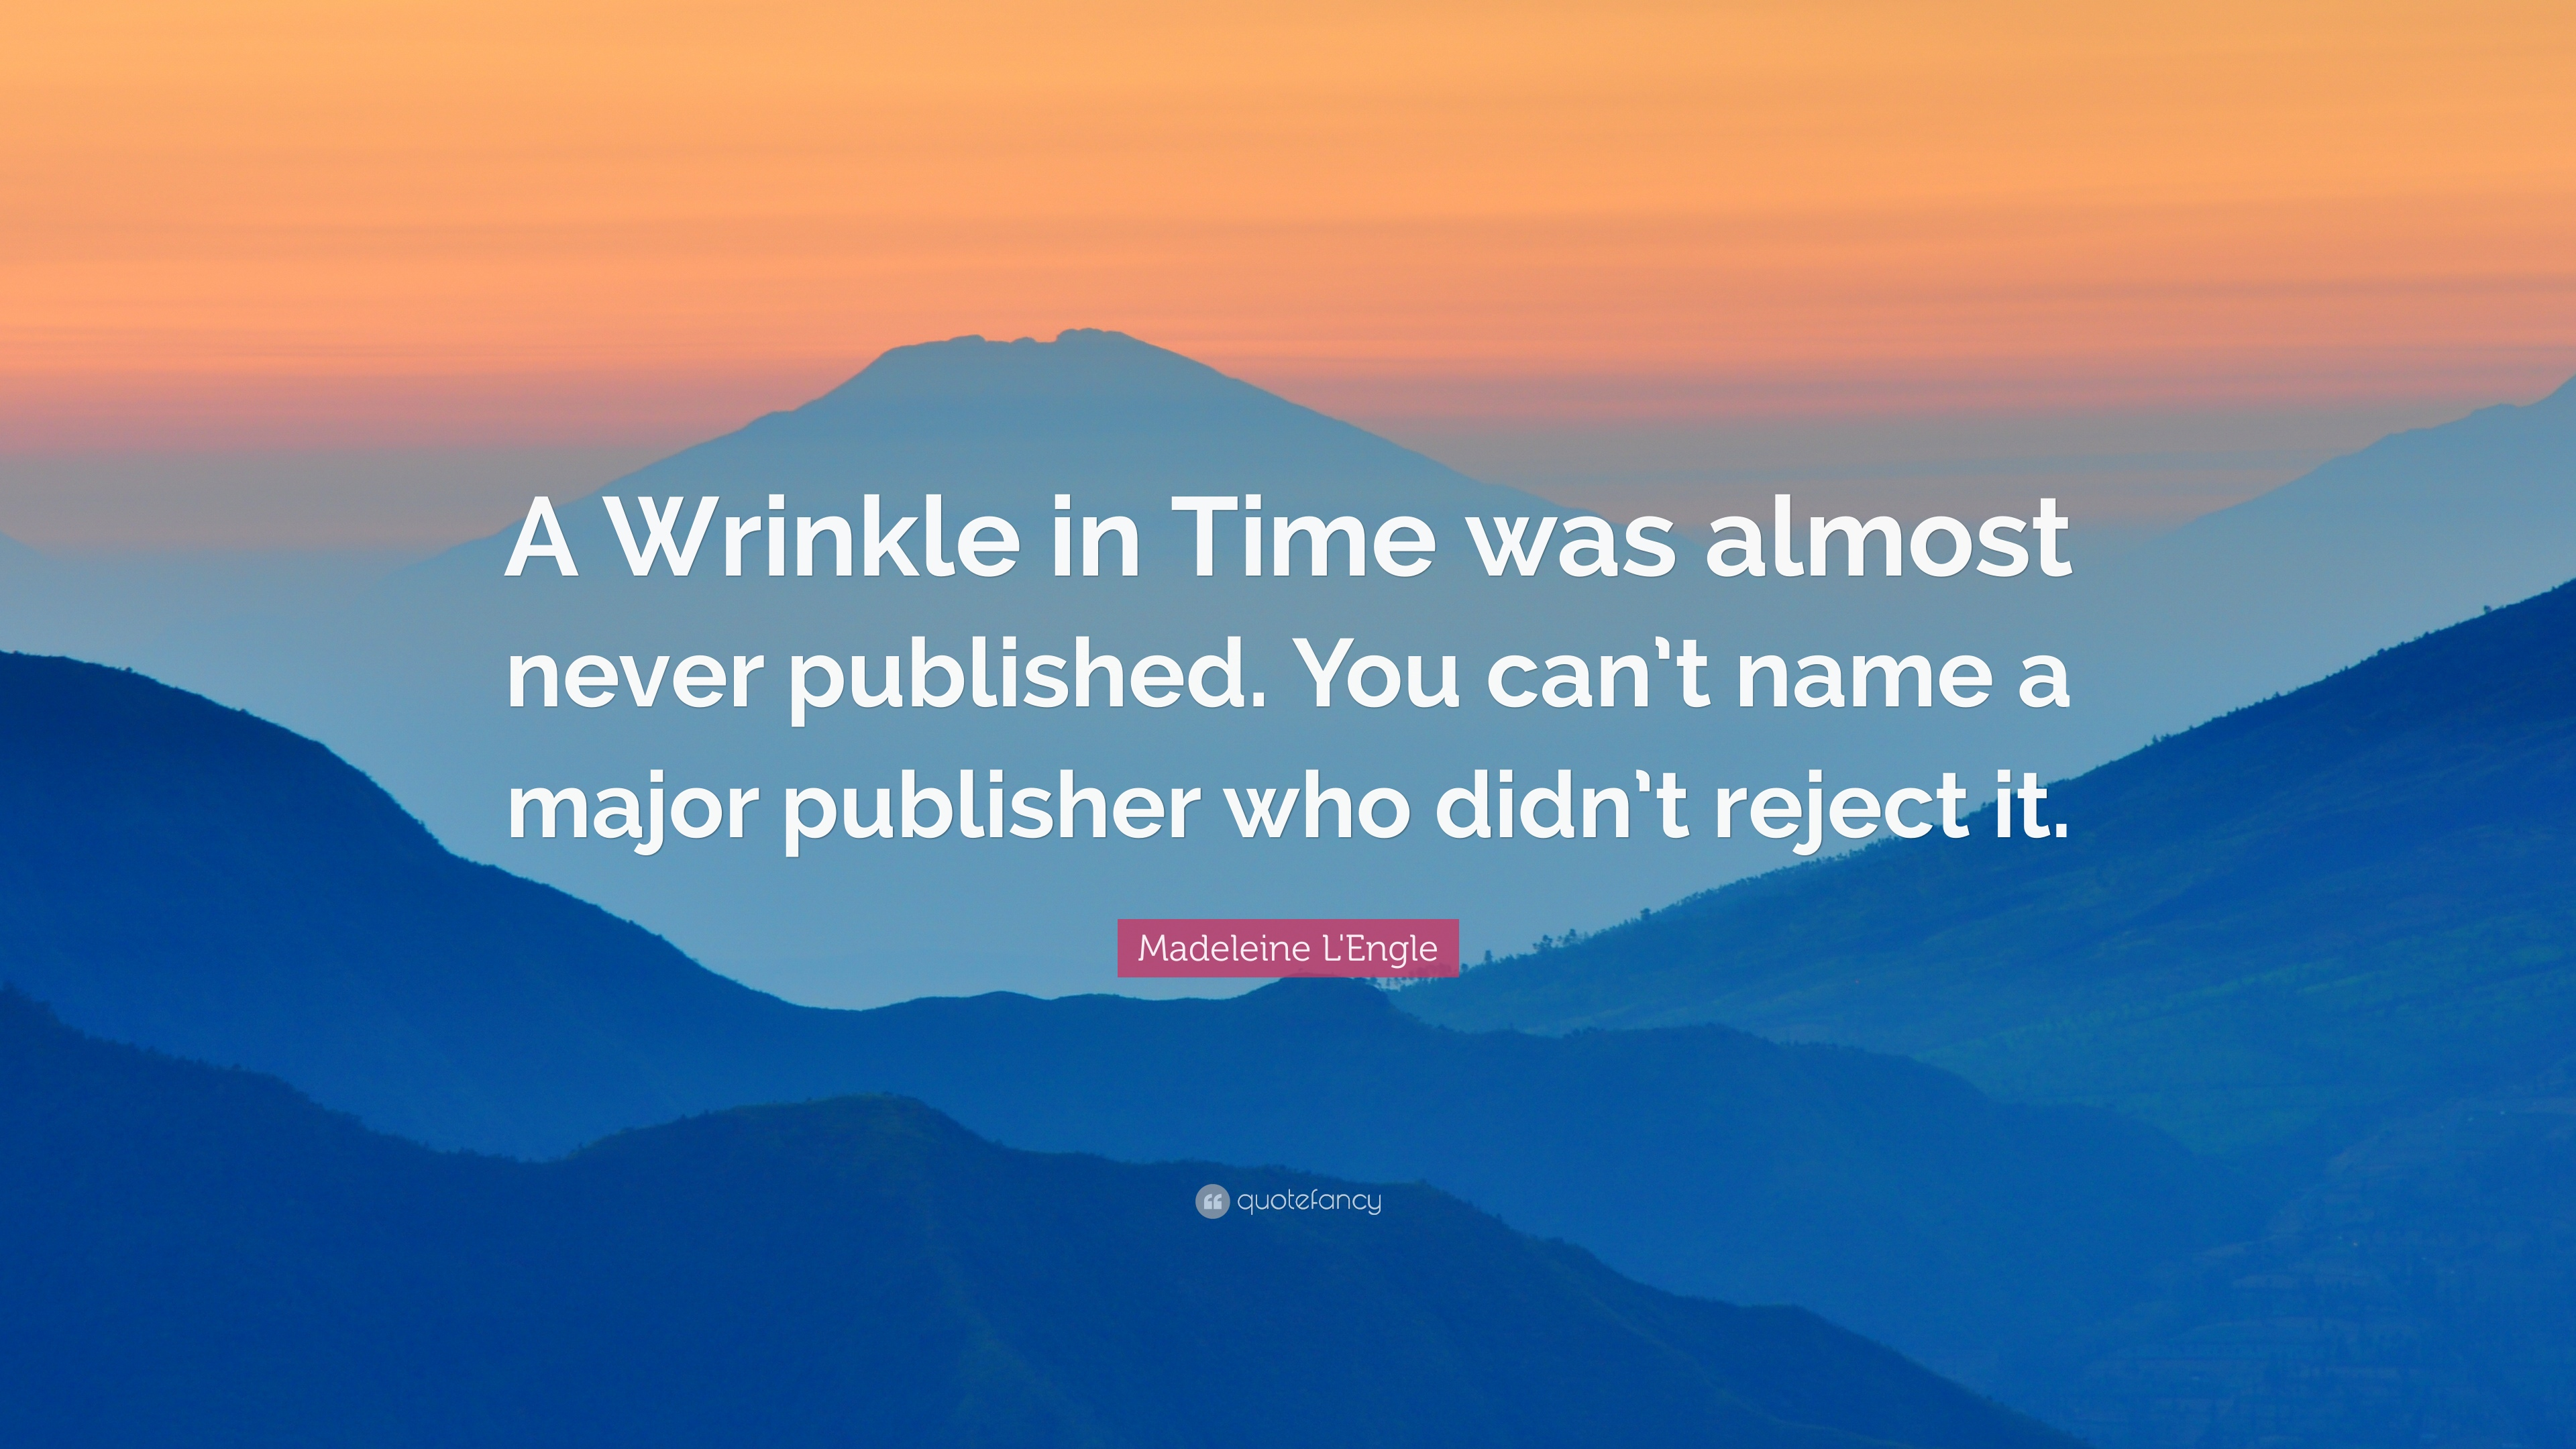 Quotes From A Wrinkle In Time: Madeleine L'Engle Quotes (100 Wallpapers)